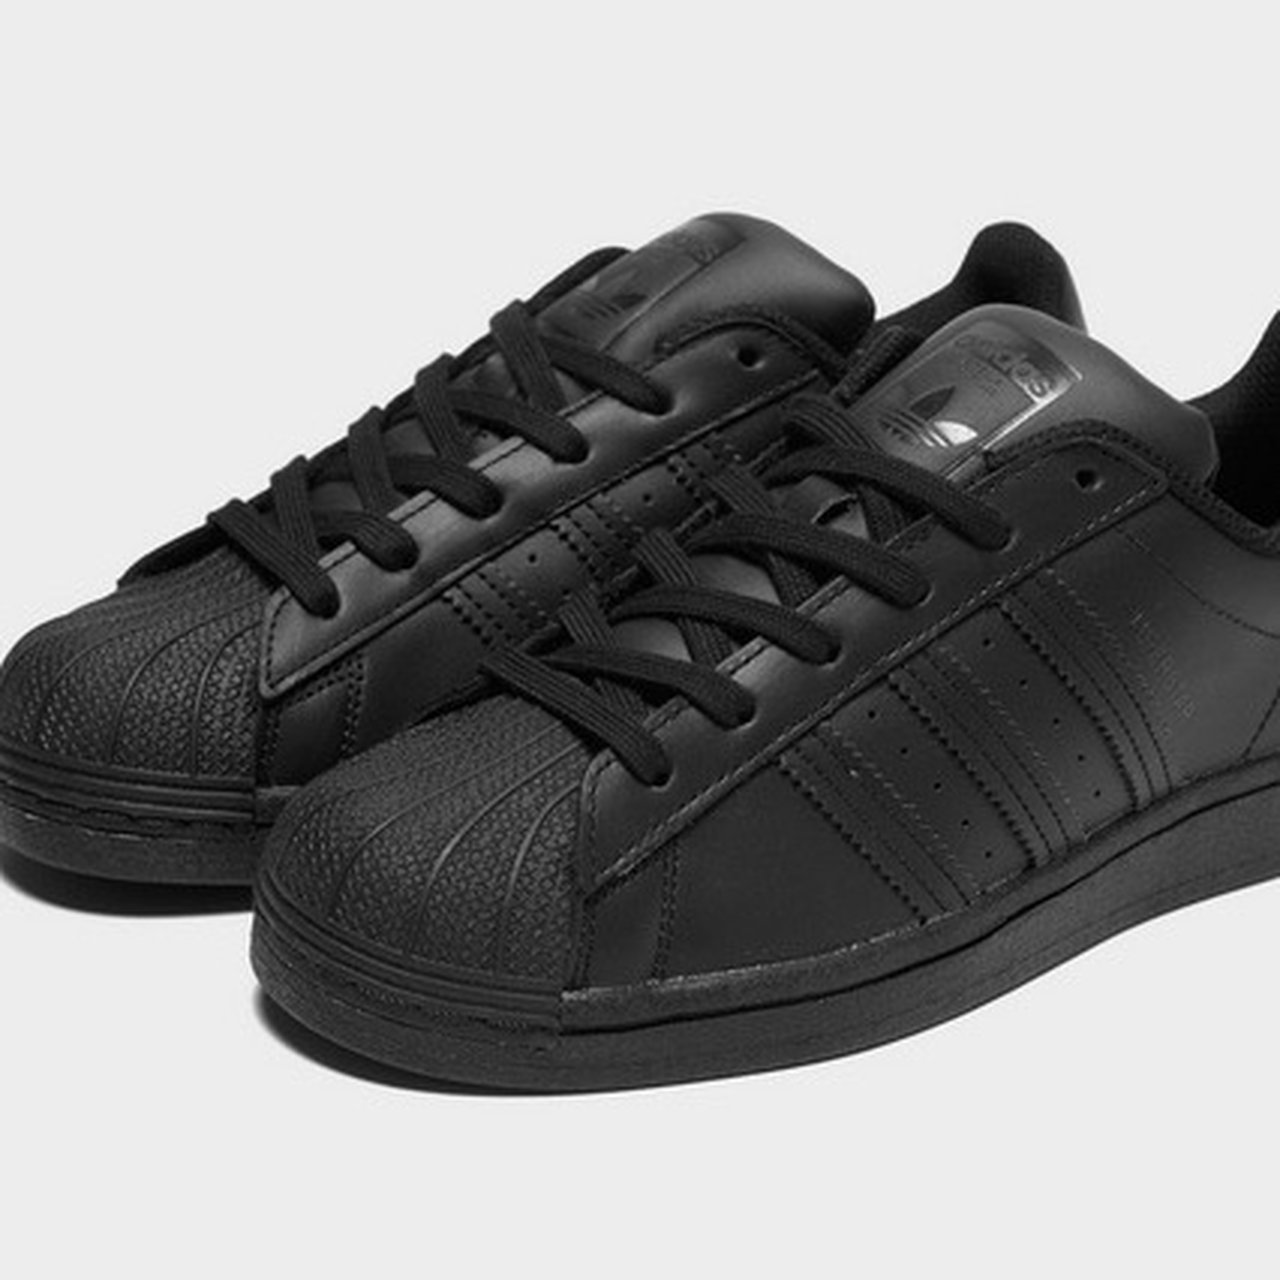 Adidas all black superstars in a uk